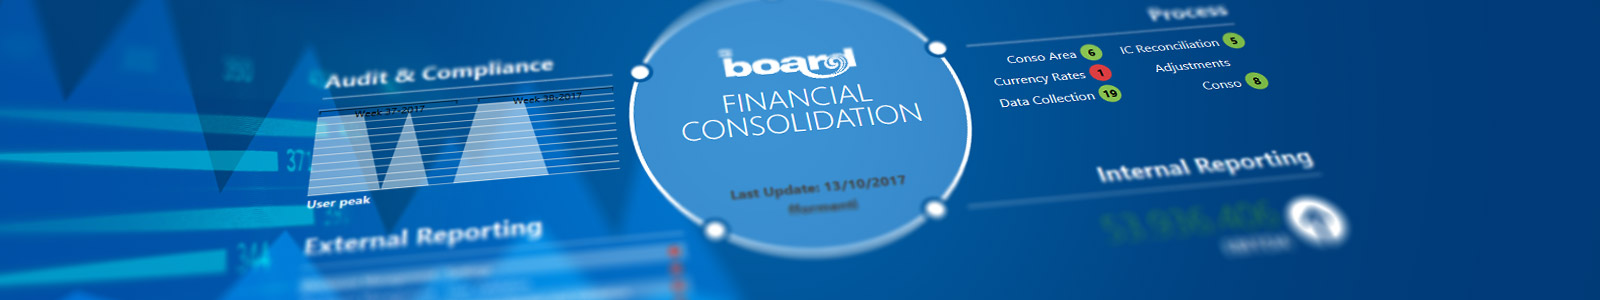 BOARD Financial Consolidation 4.0 - Asia Pacific